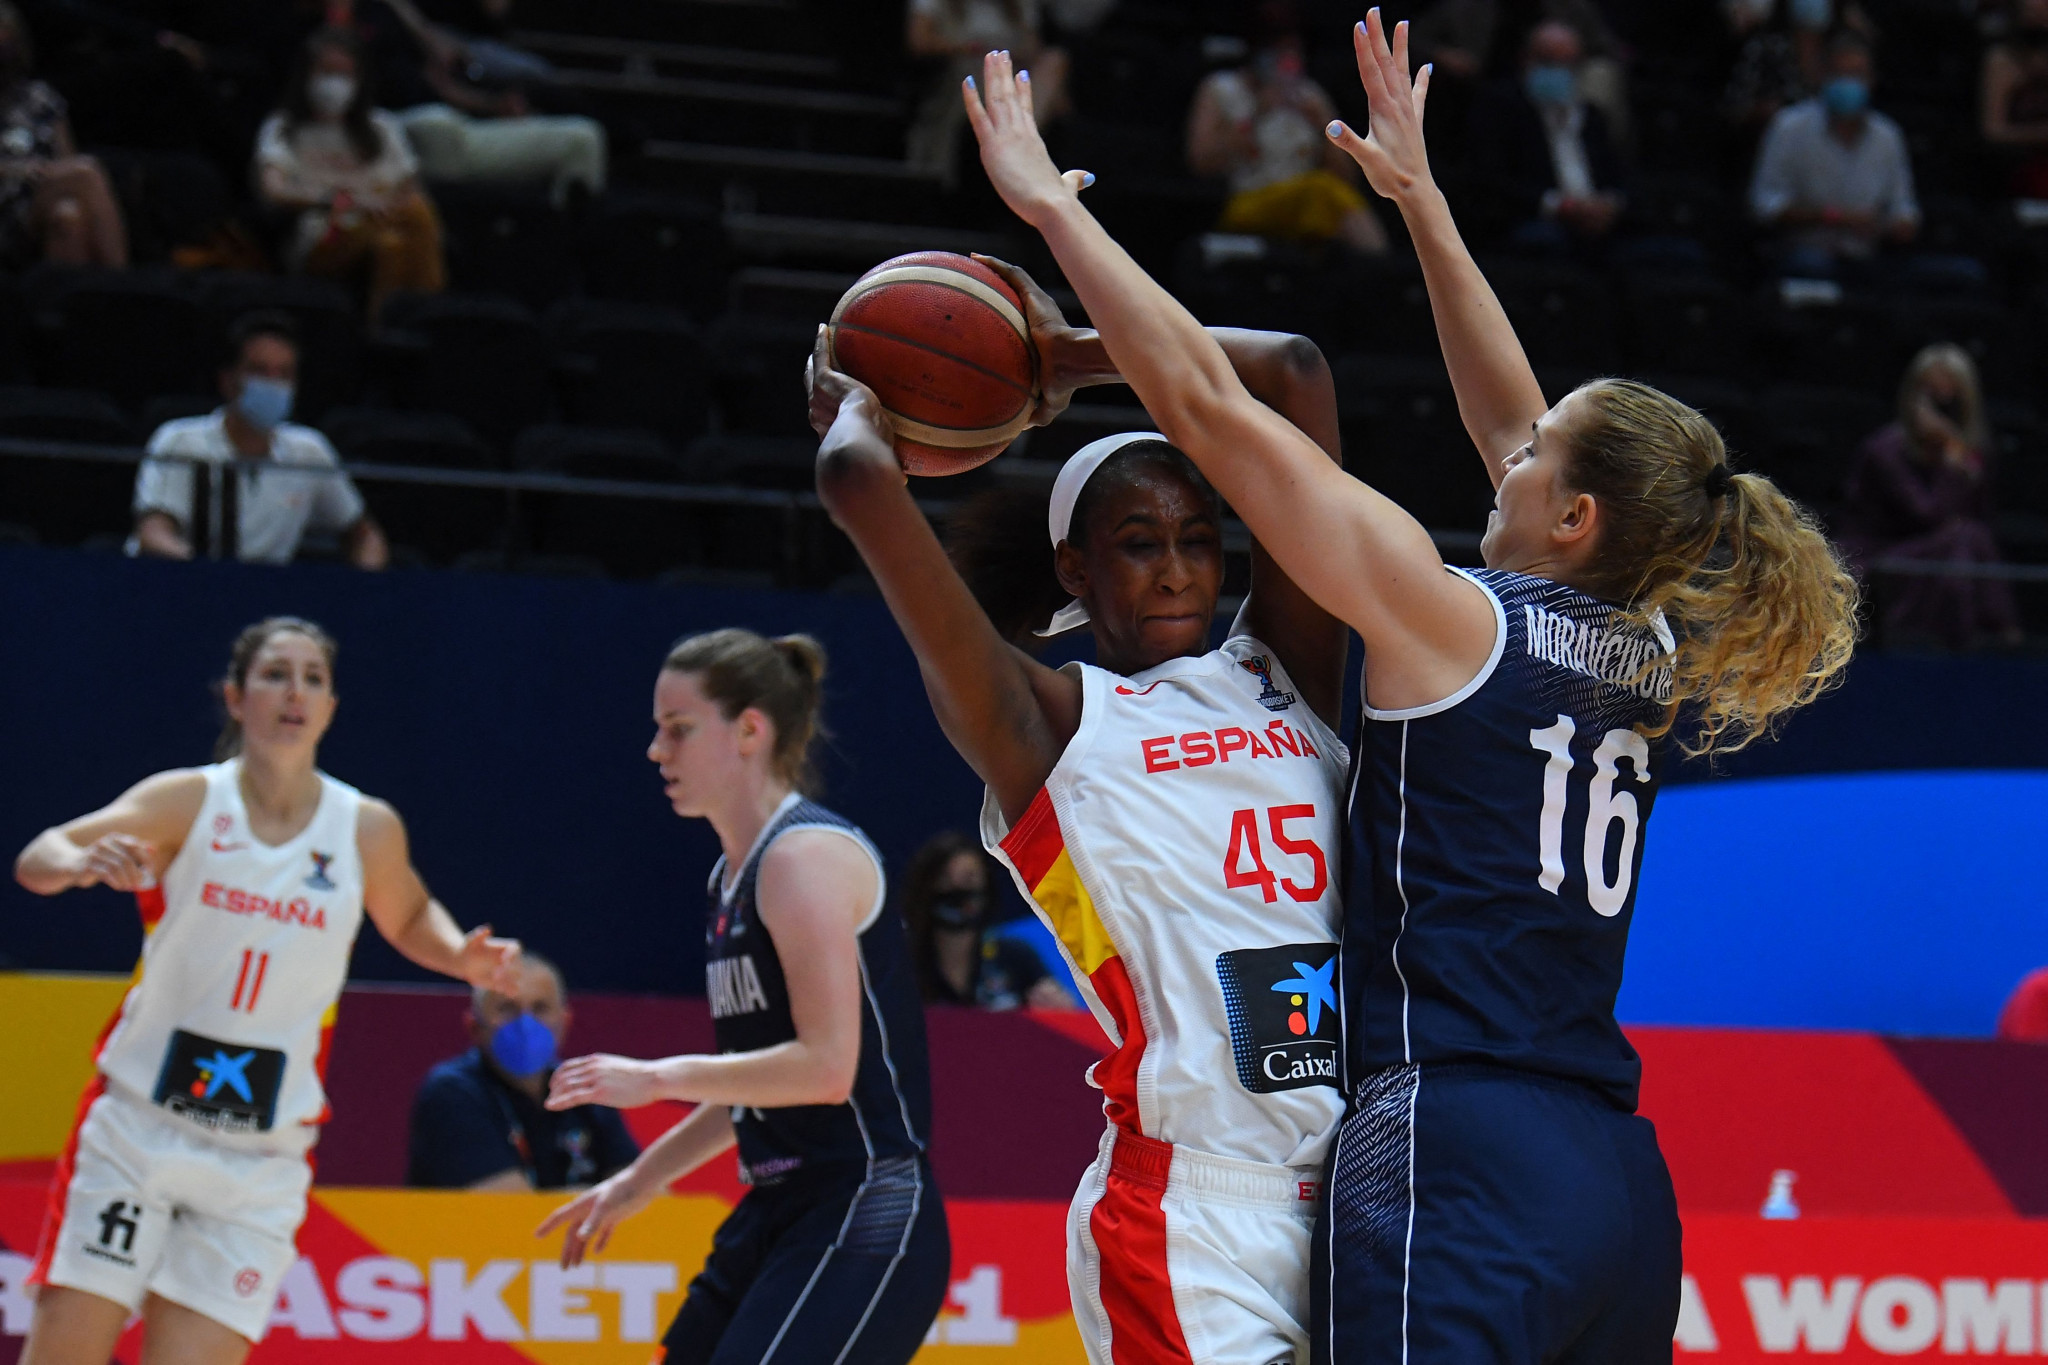 Serbia and France remain unbeaten after group phase of FIBA Women's EuroBasket